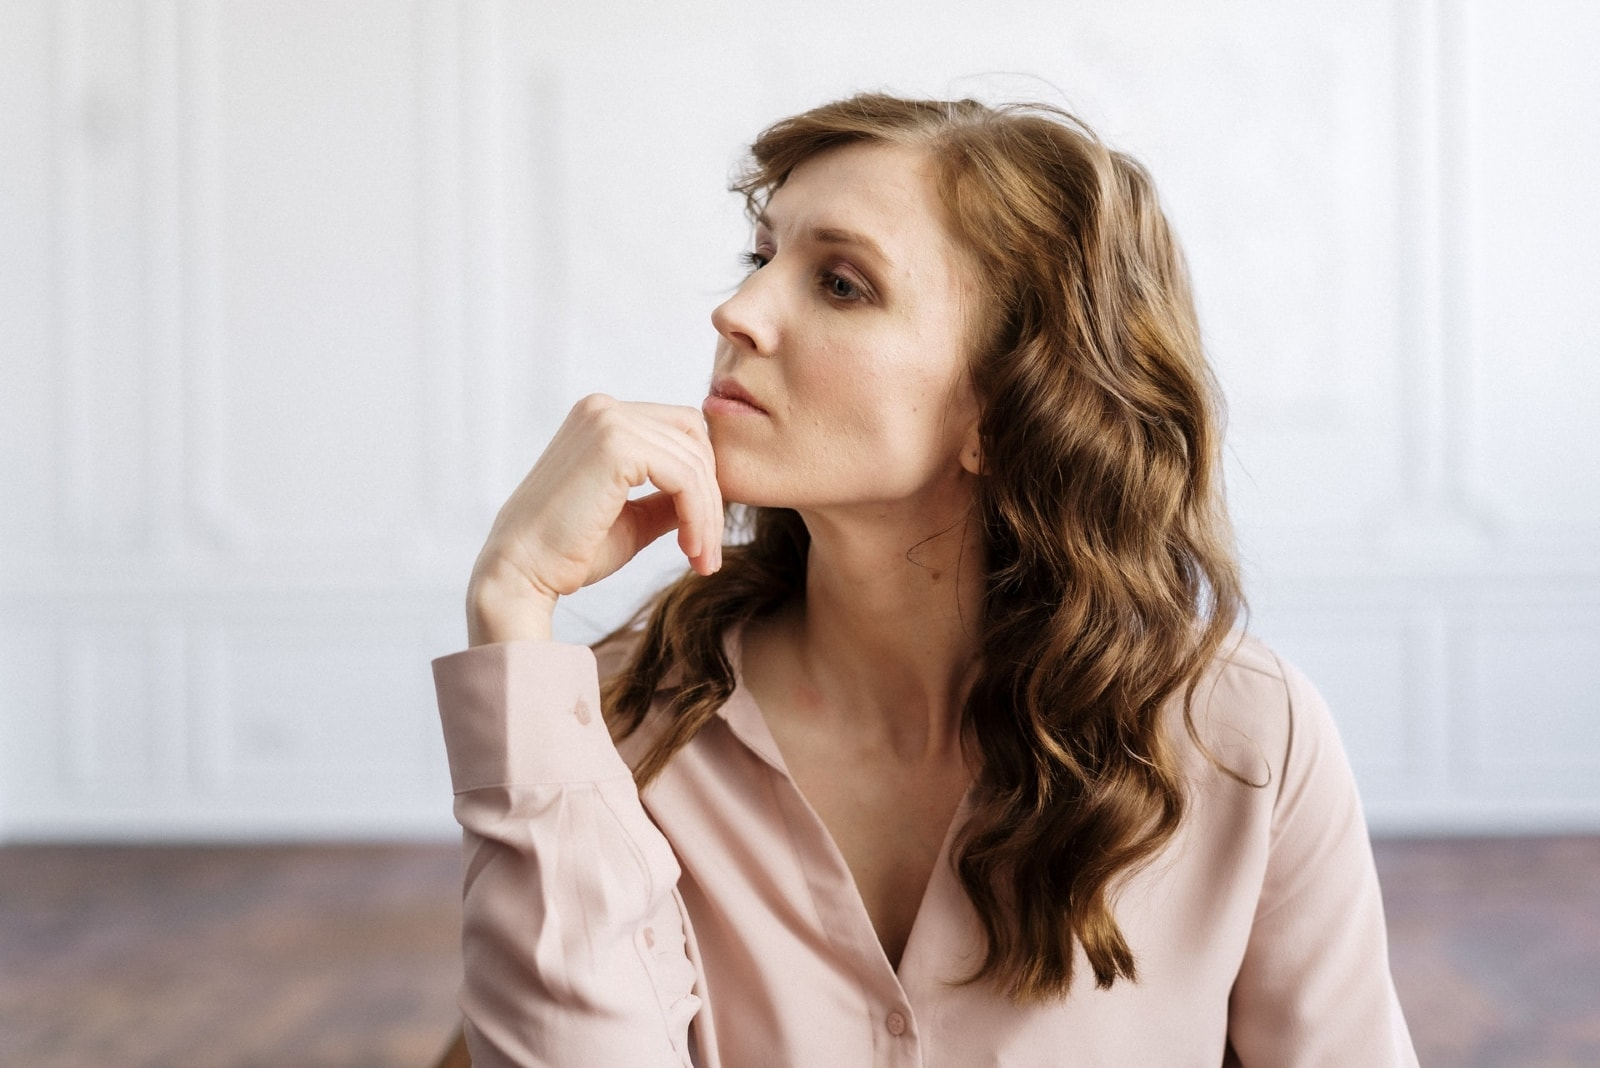 pensive woman in white shirt sitting indoor